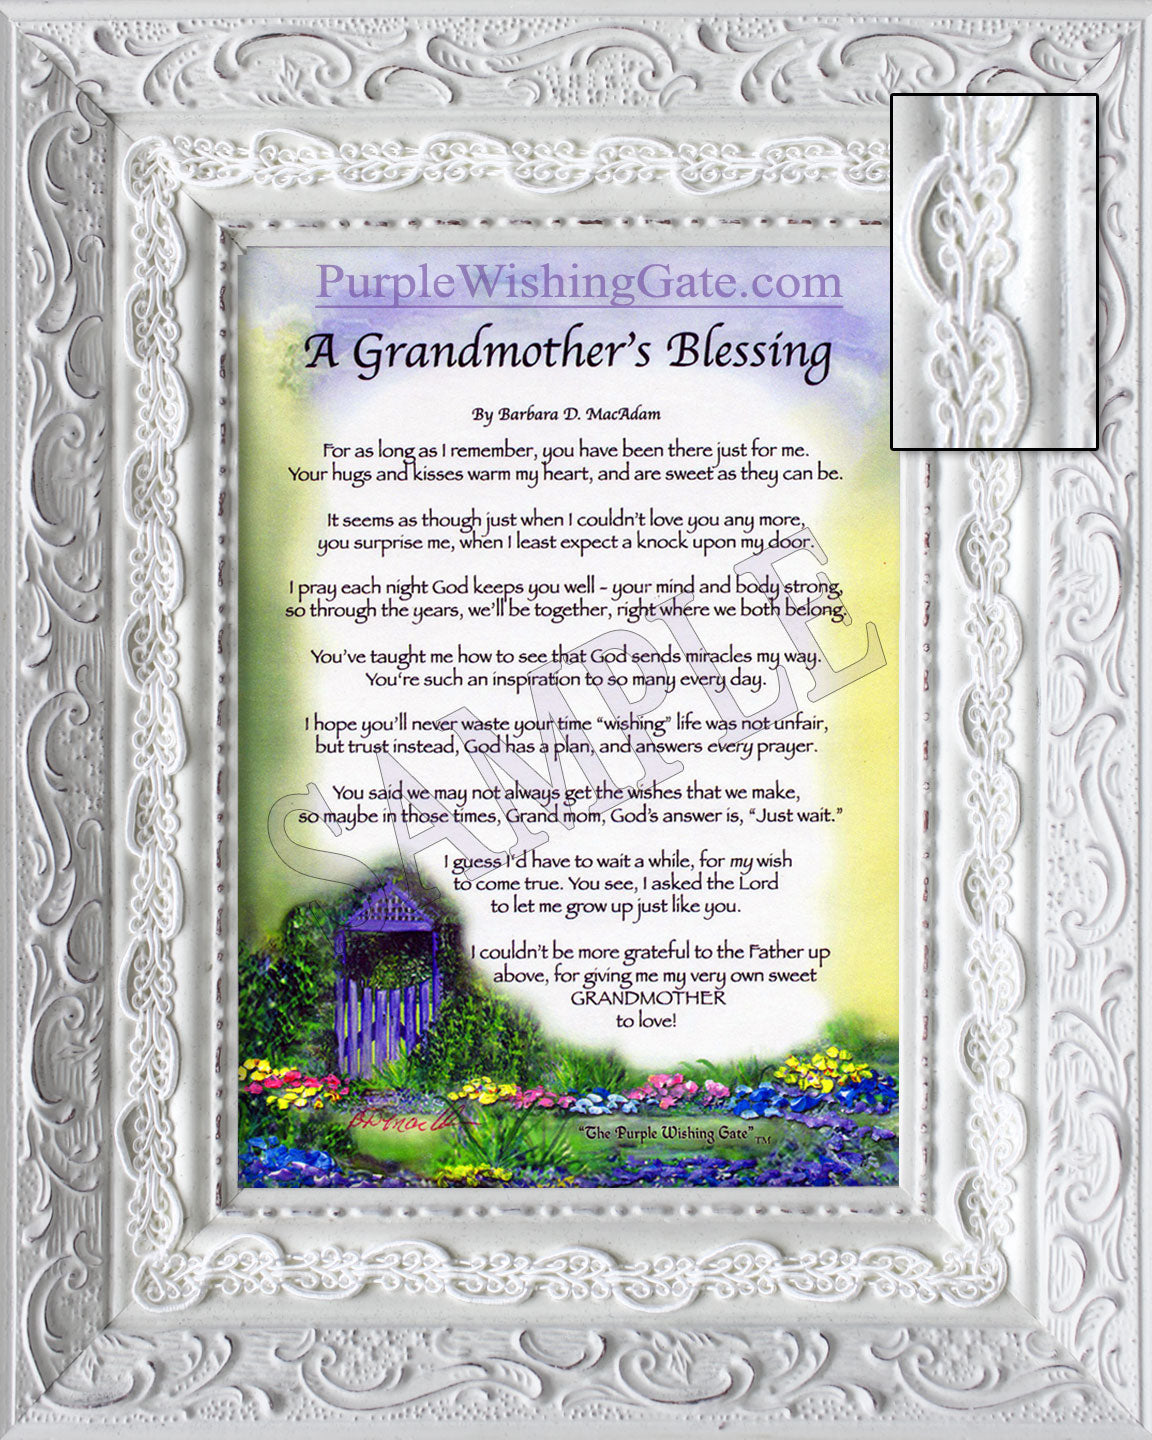 Framed Grandmother's Blessing CLOSEOUT! - Gifts for Grandmother - PurpleWishingGate.com